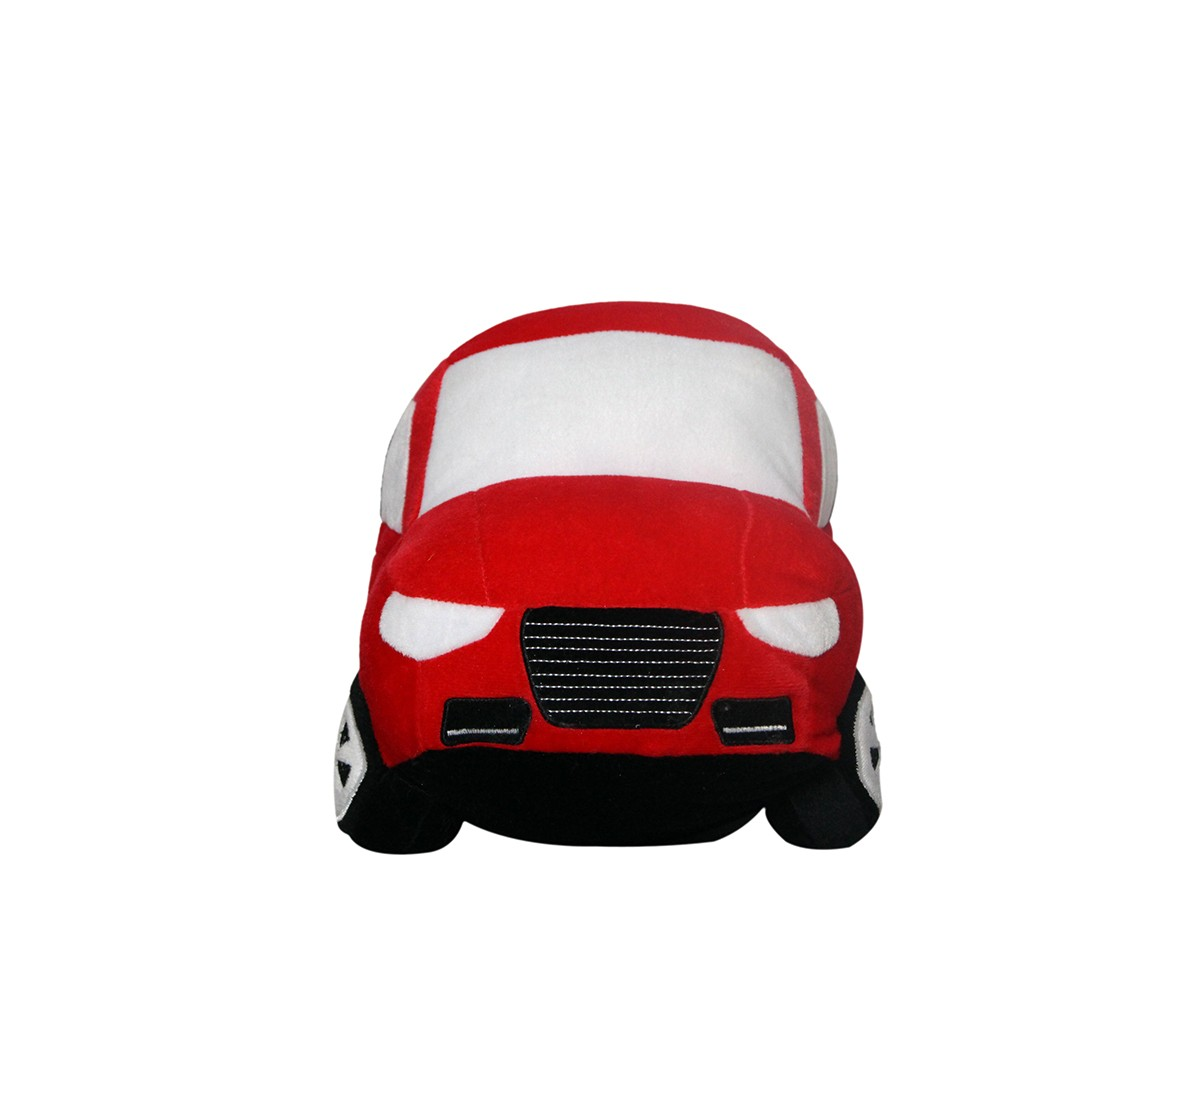 Soft Buddies Big Car Red Quirky Soft Toys for Kids age 12M+ - 22.86 Cm